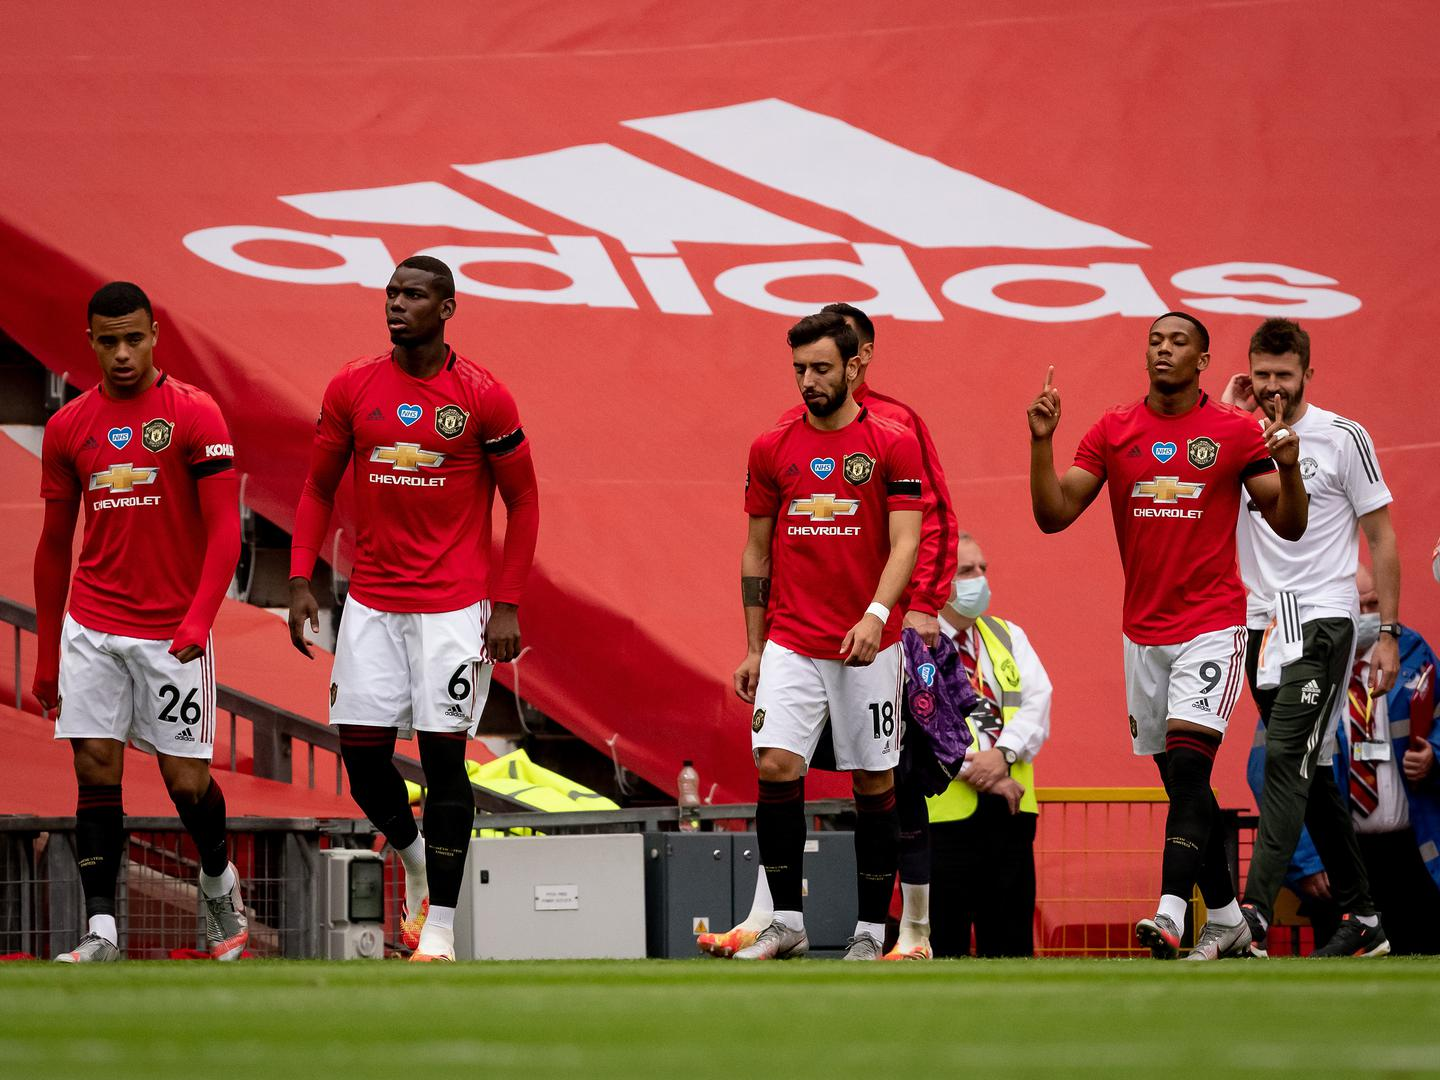 United players come out at Old Trafford